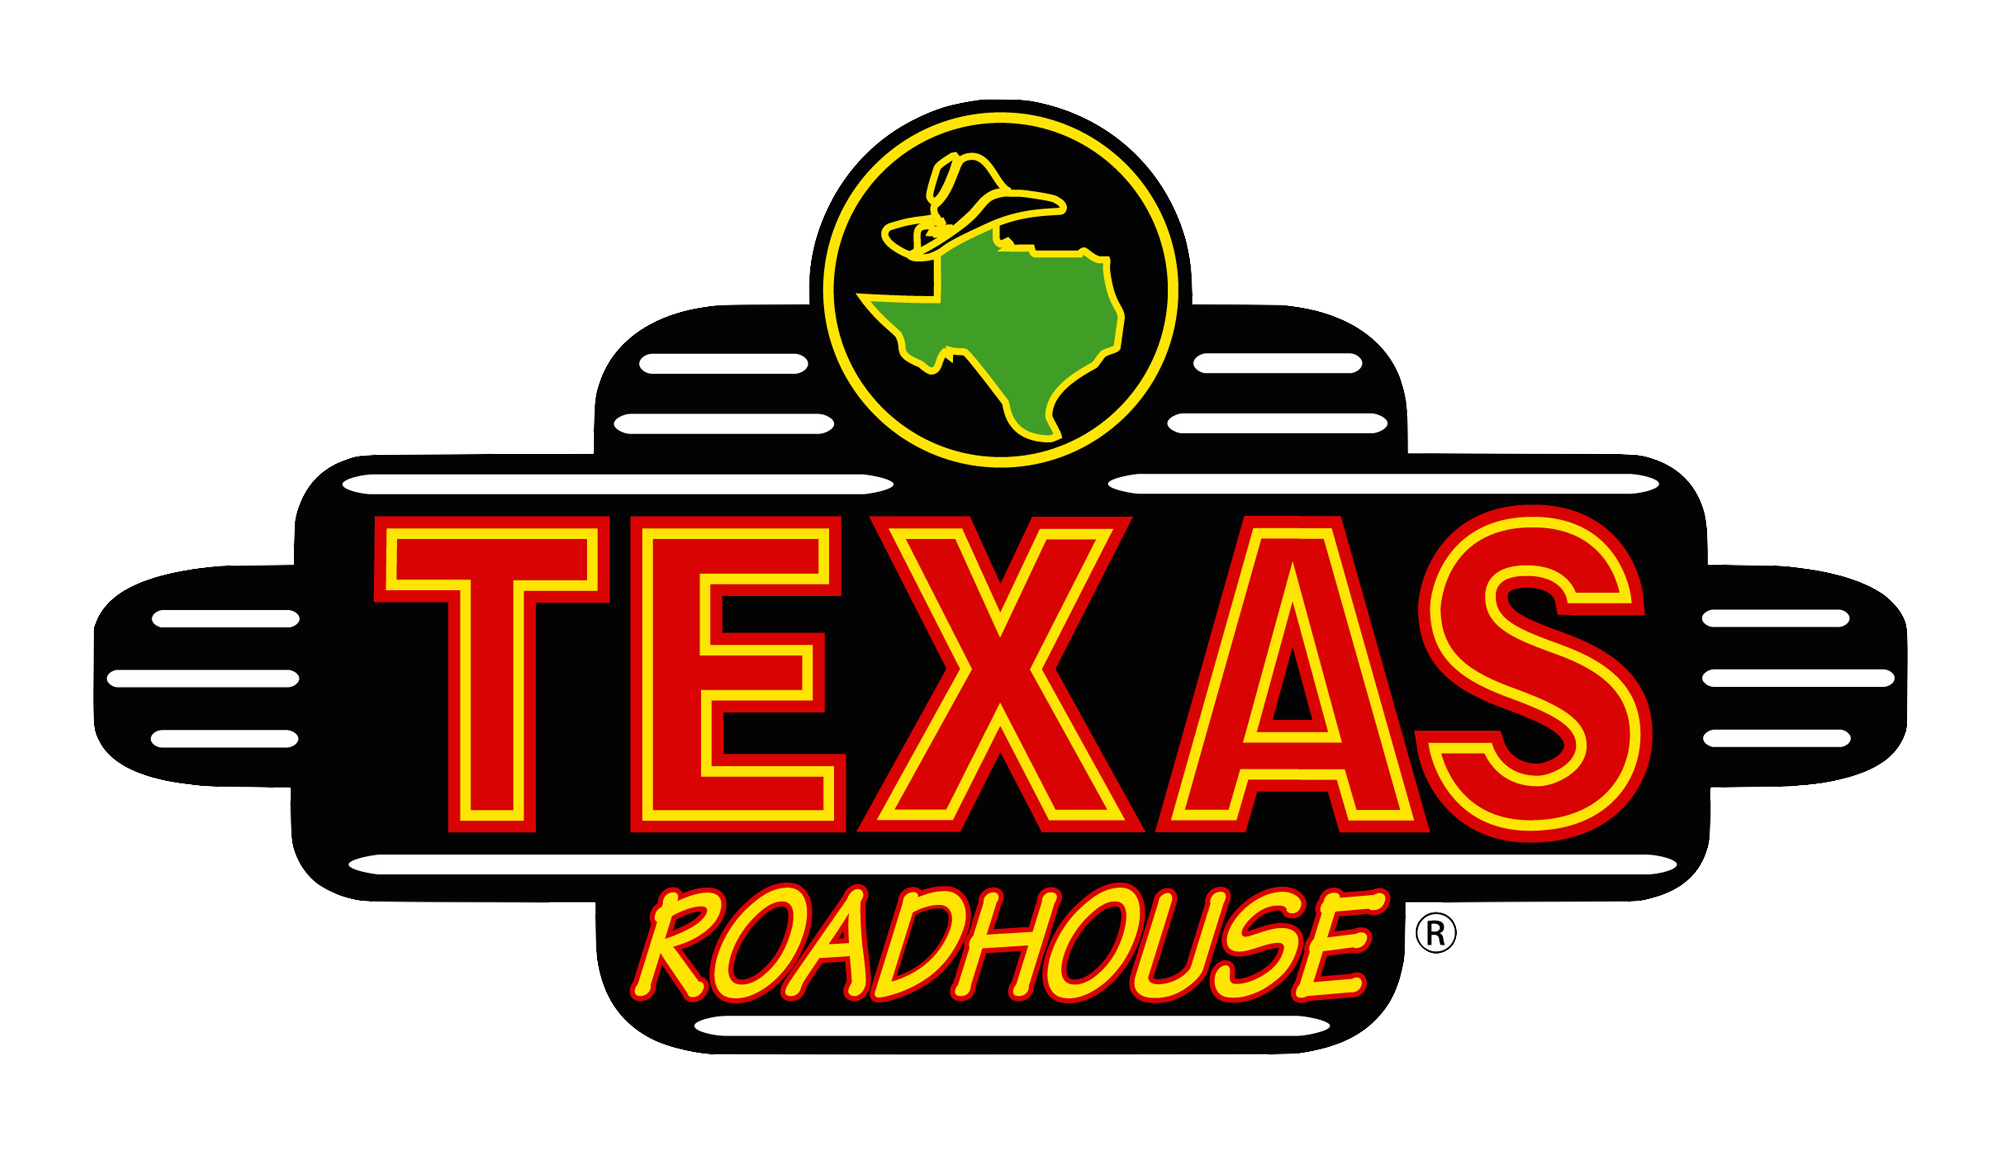 Texas Roadhouse logo